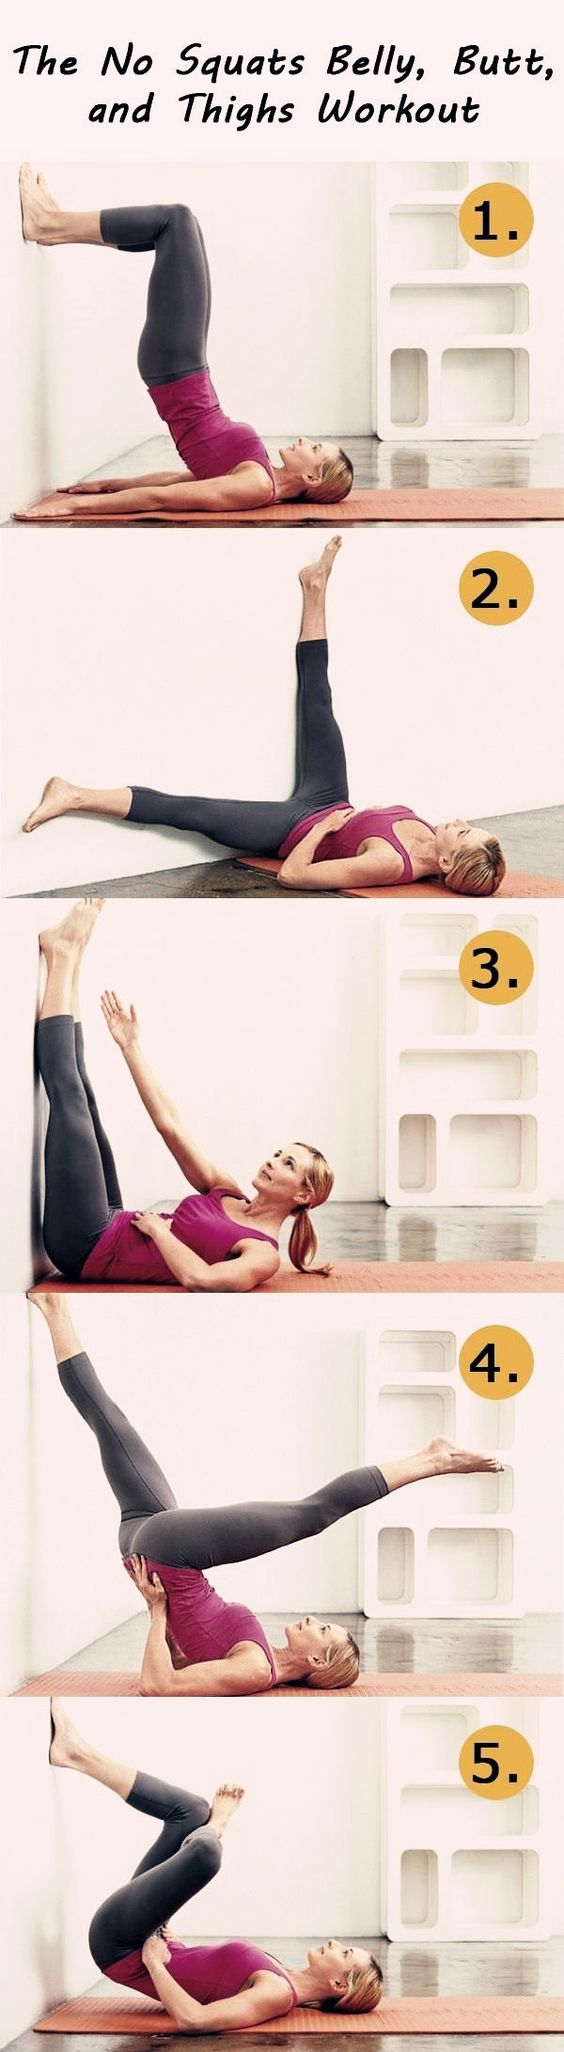 flatten your belly, slim your thighs, and firm your butt.